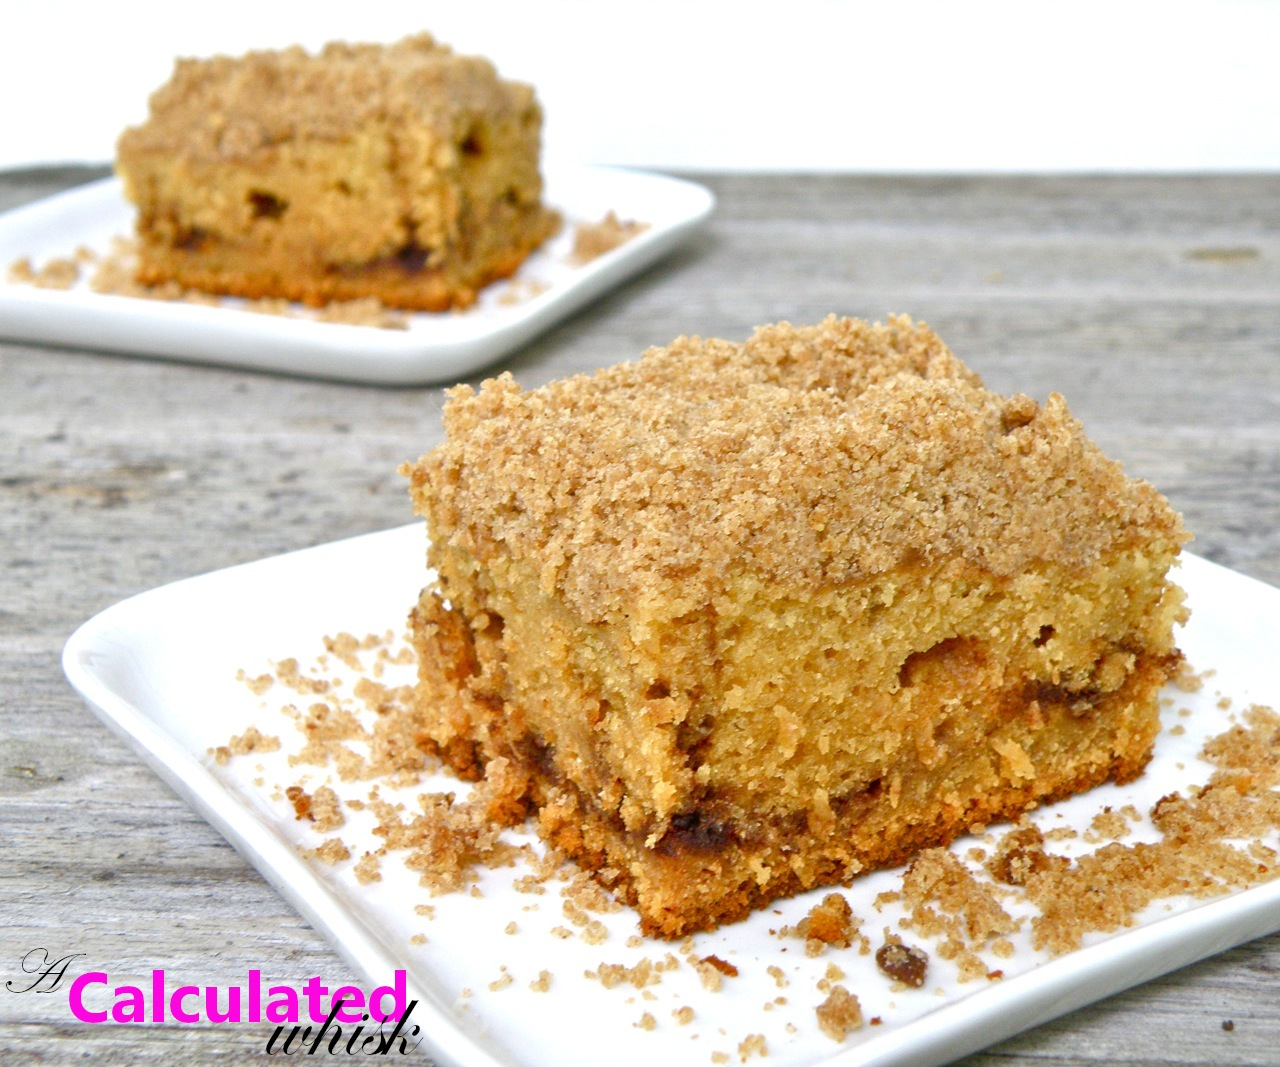 ... Whisk: Cinnamon Swirl Coffee Cake with Brown Butter Streusel